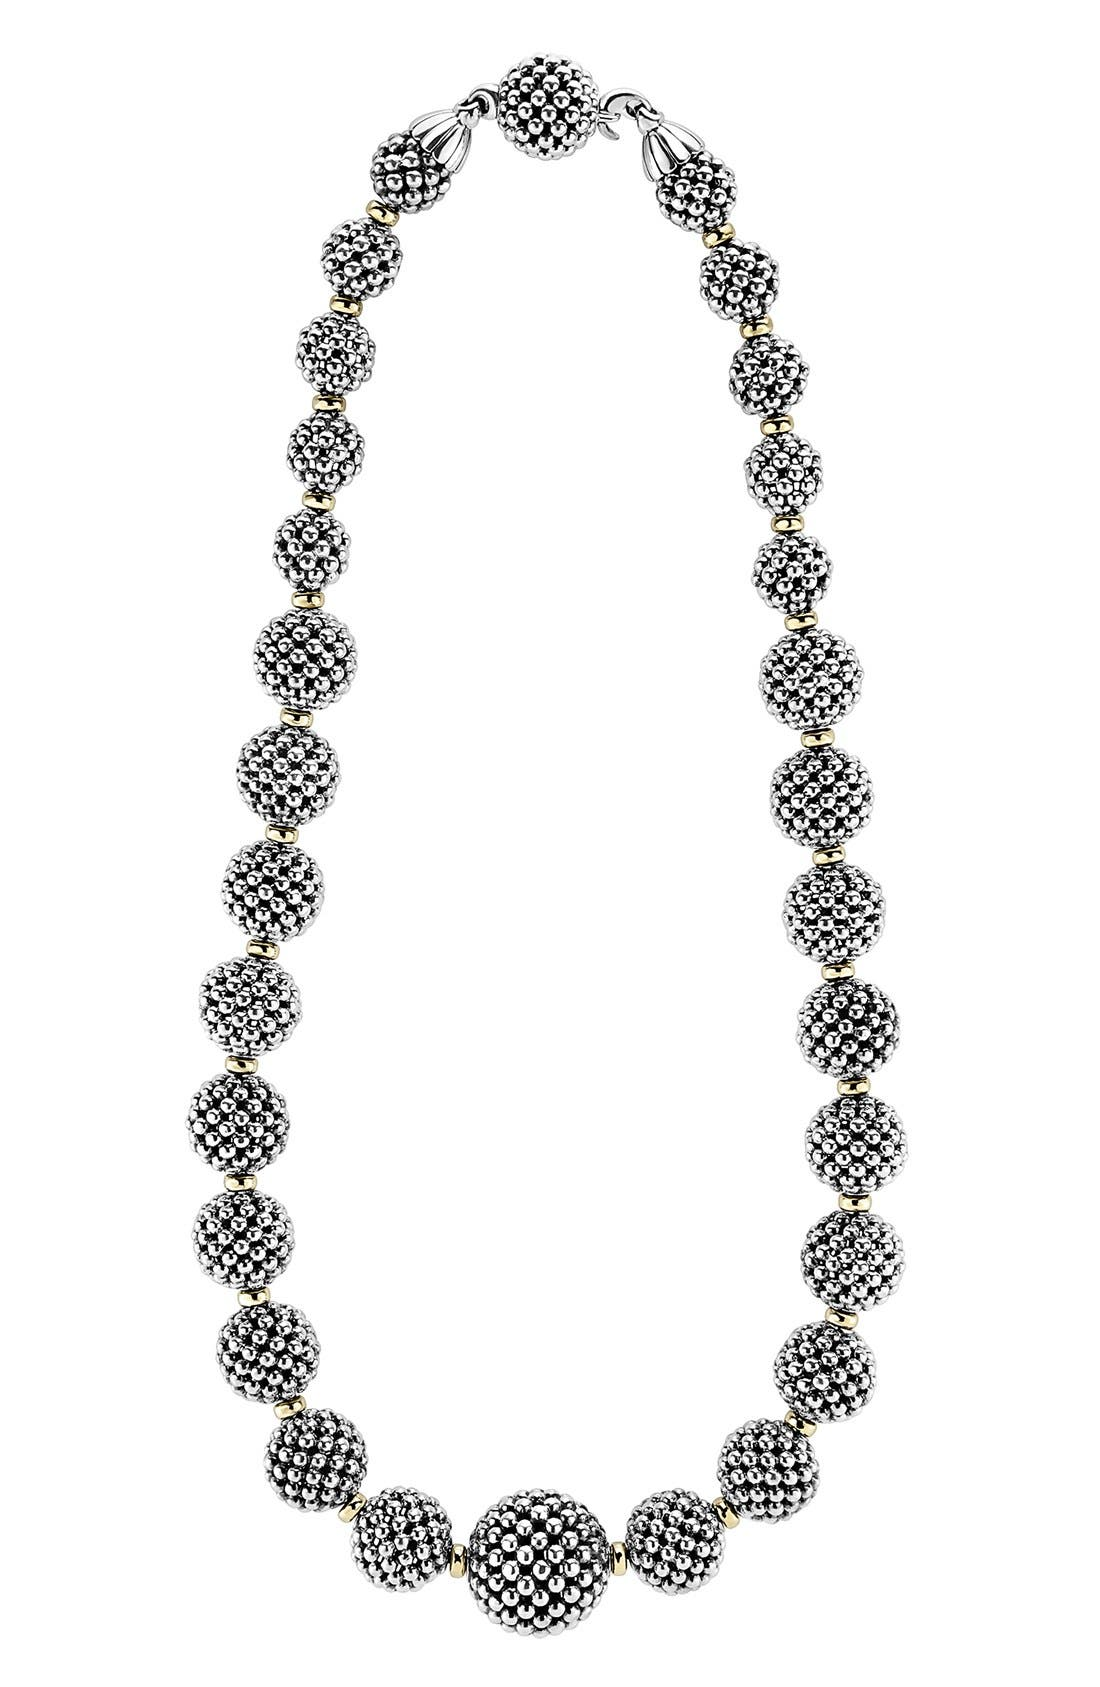 Alternate Image 1 Selected - LAGOS 'Caviar Forever' Lattice Ball Necklace